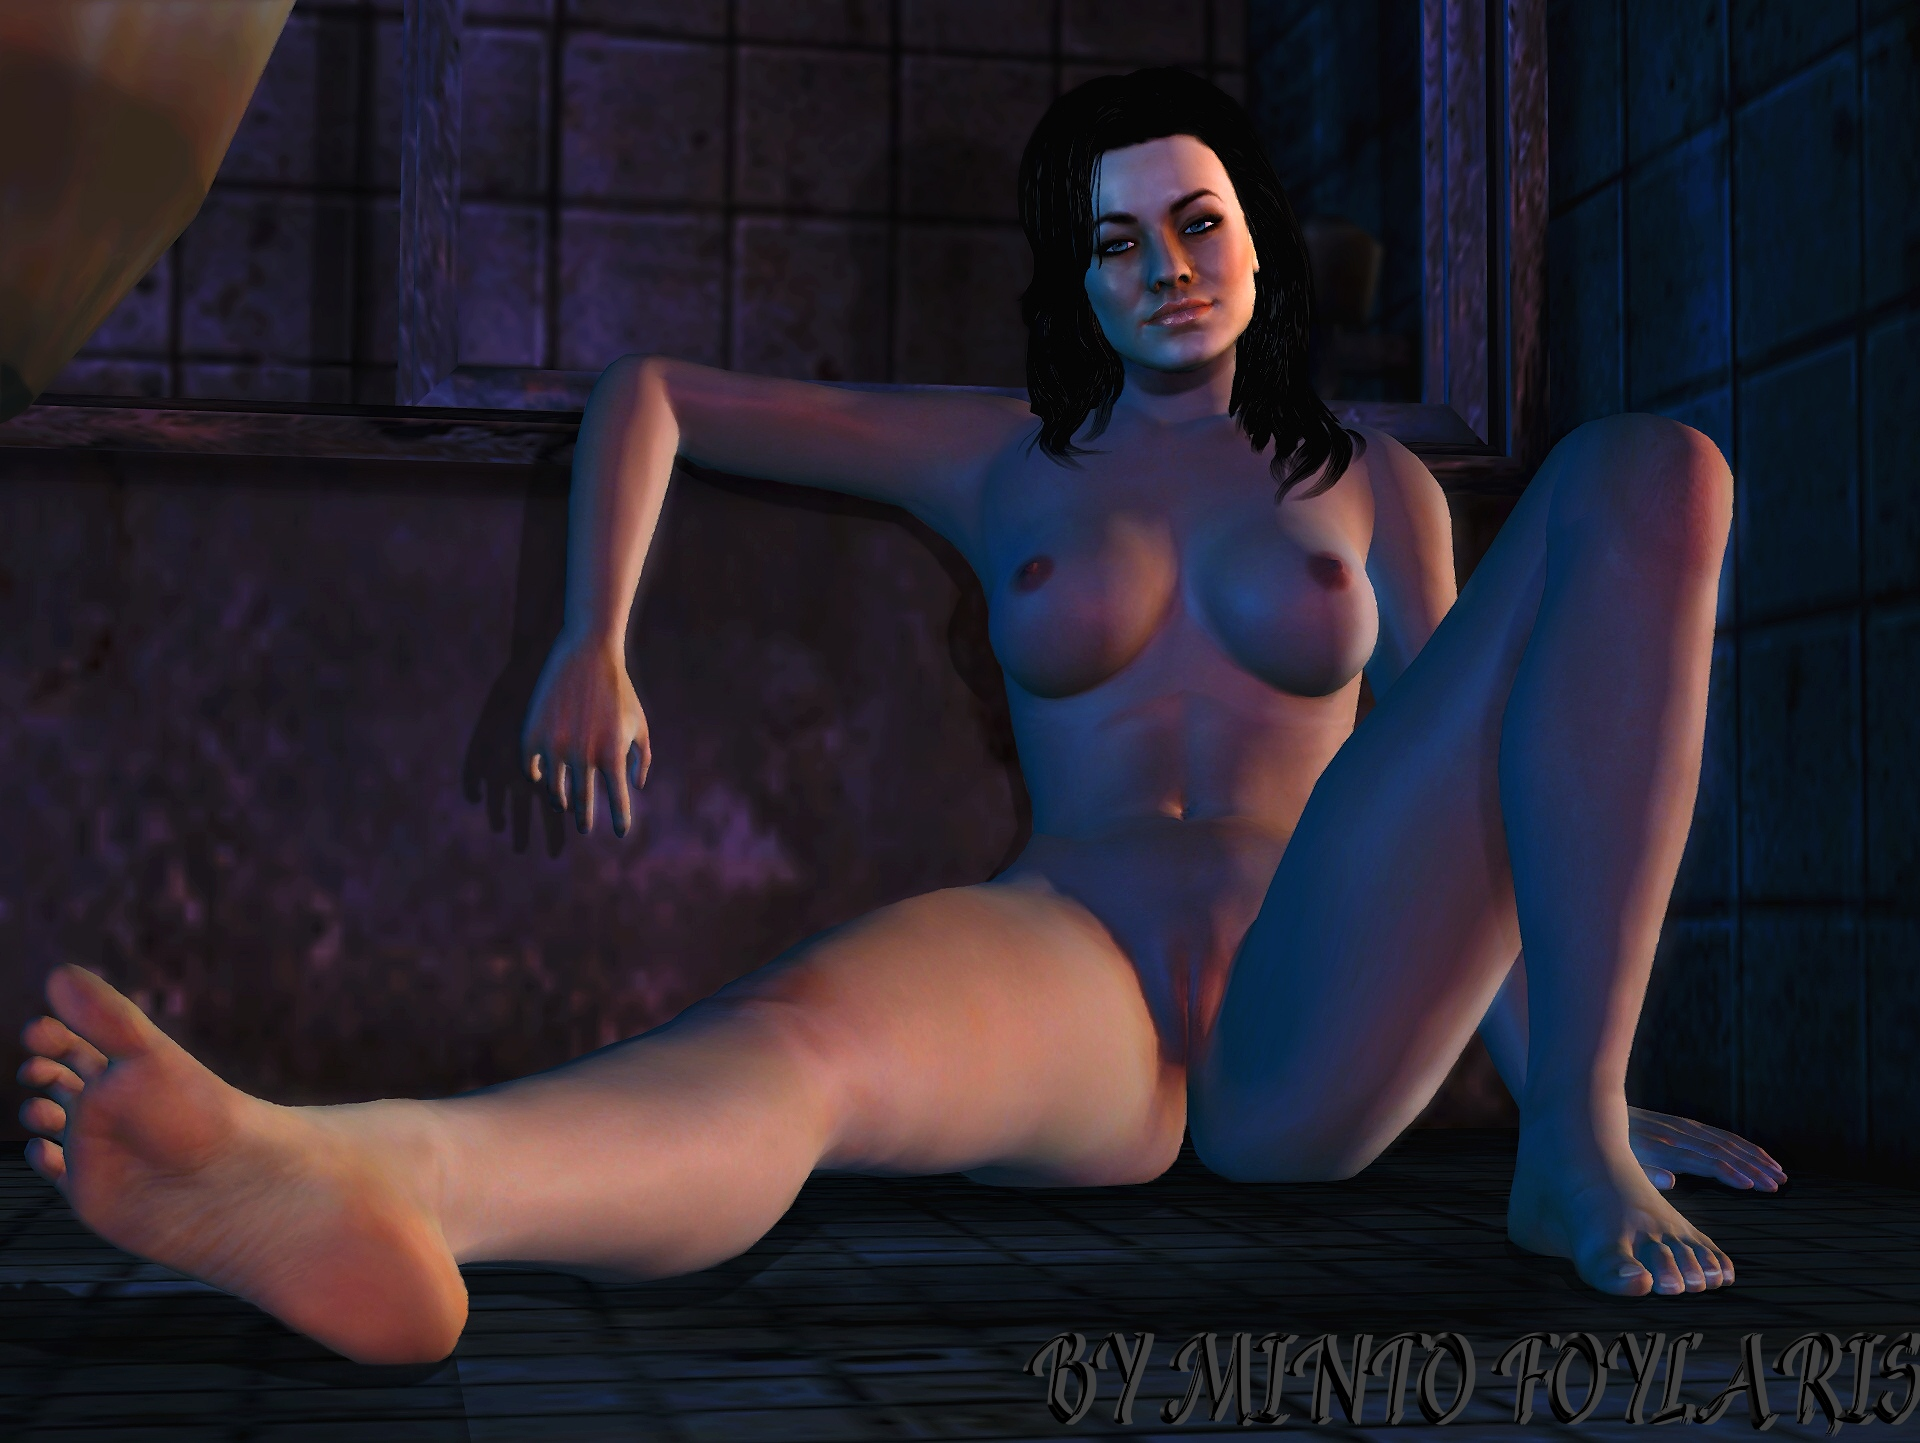 Mass effect miranda porn video fucked scenes